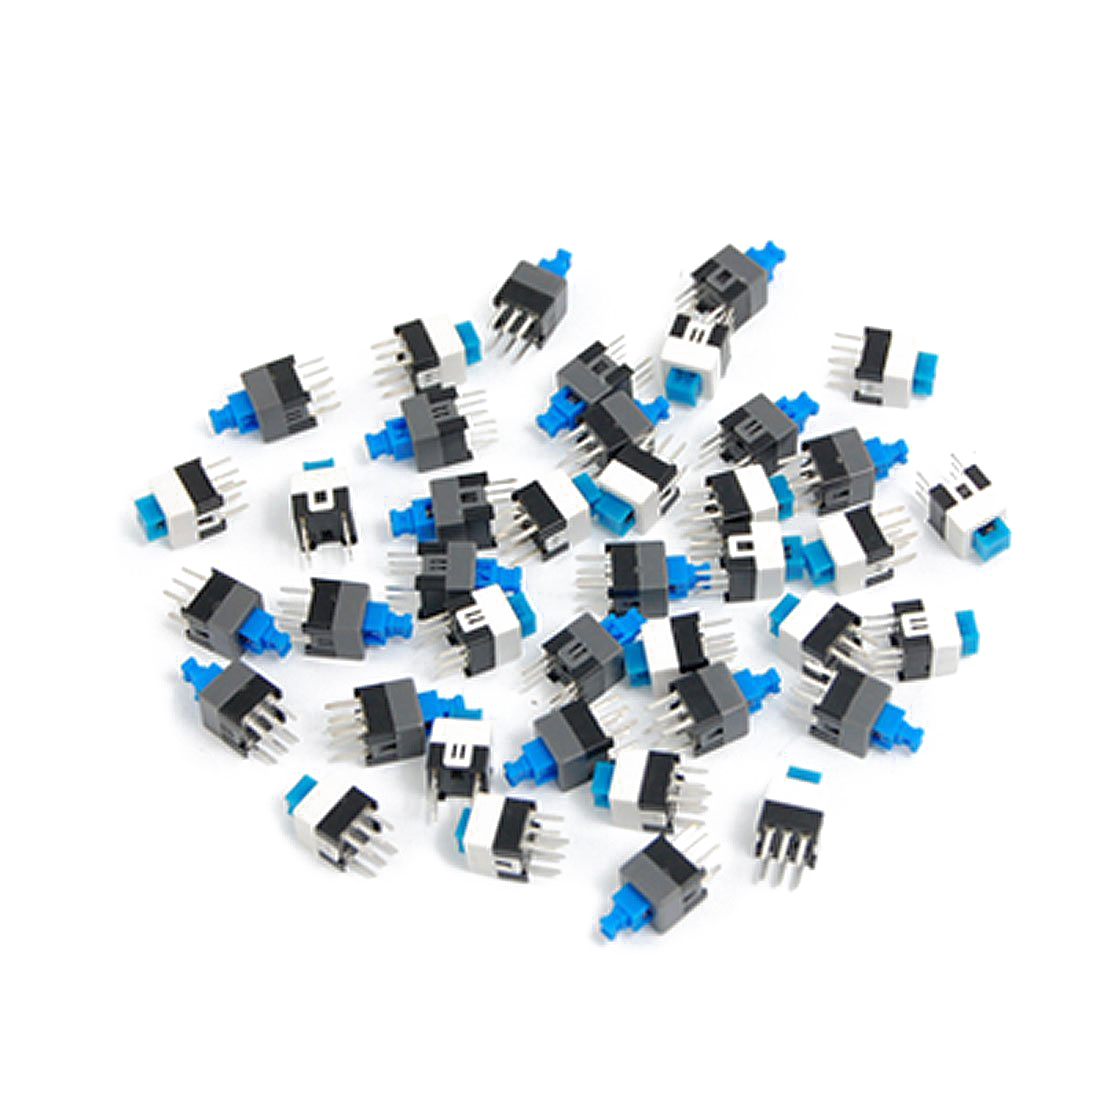 цена на Promotion! 40 Pcs 7 x 7mm PCB Tact Tactile Push Button Switch Self Lock 6 Pin DIP